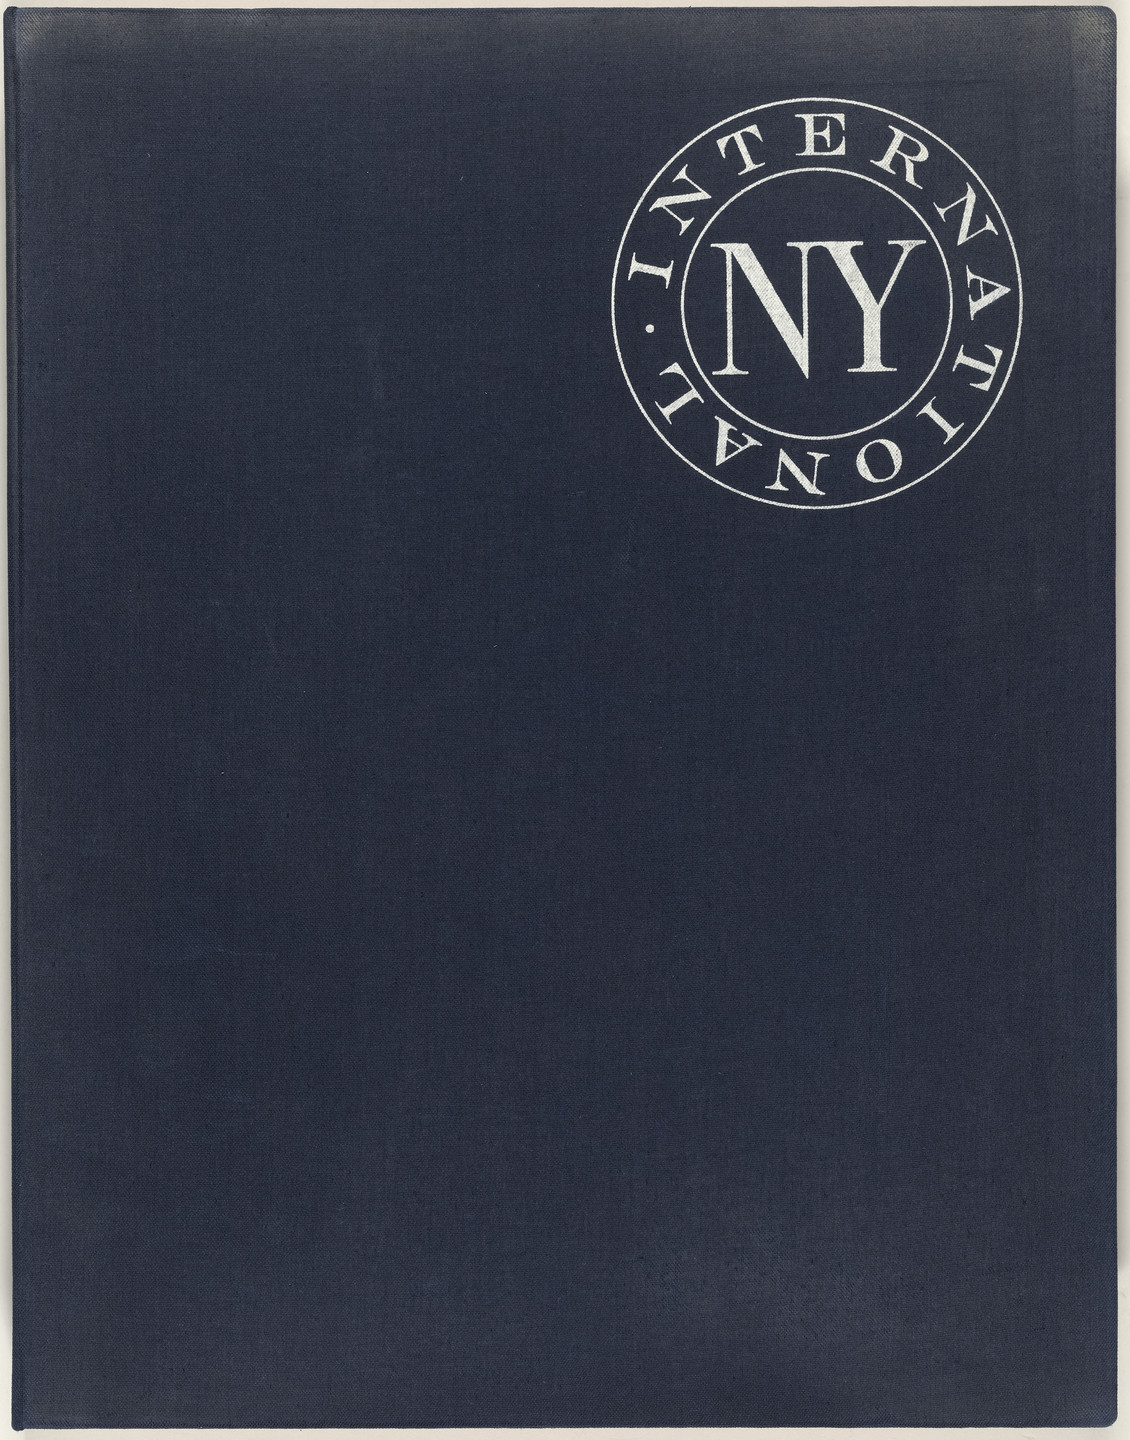 Arman, Mary Bauermeister, Öyvind Fahlström, John Goodyear, Charles Hinman, Allen Jones, Robert Motherwell, Ad Reinhardt, James Rosenquist, Saul Steinberg, Various Artists. New York International. 1965–66, published 1966